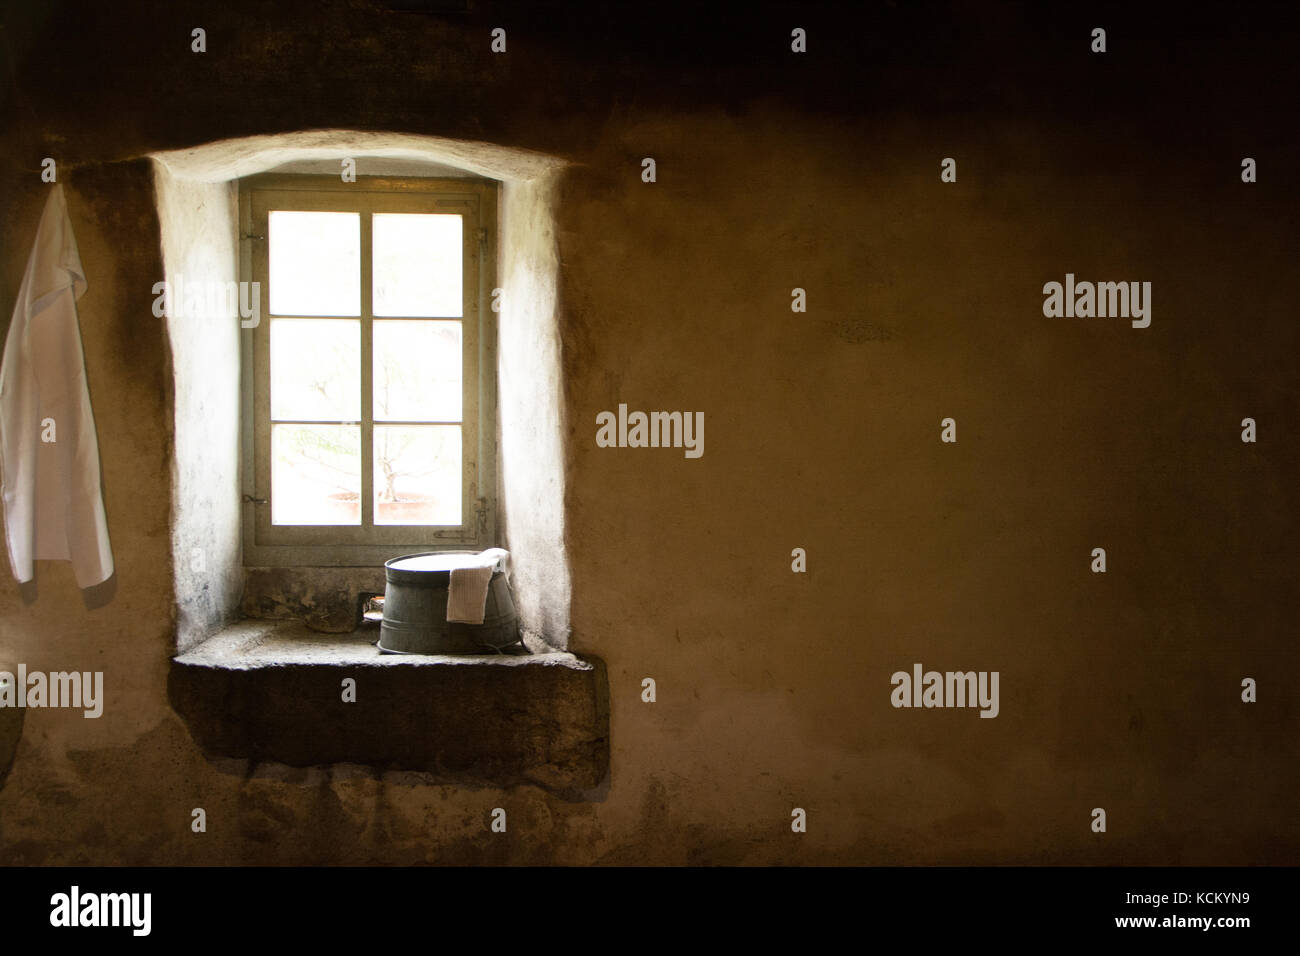 vintage sink in an old house - Stock Image